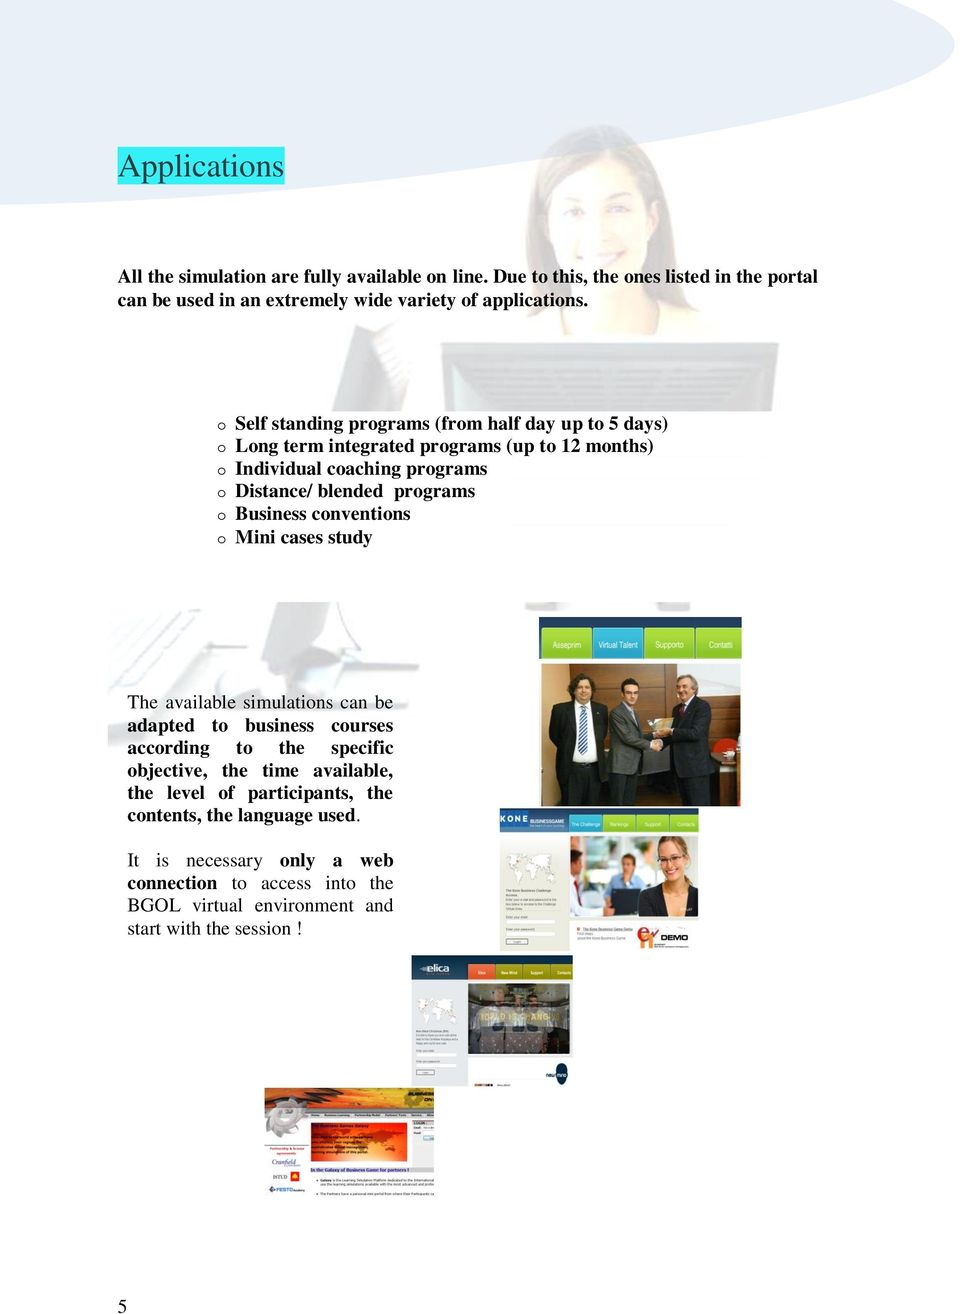 o Business conventions o Mini cases study The available simulations can be adapted to business courses according to the specific objective, the time available, the